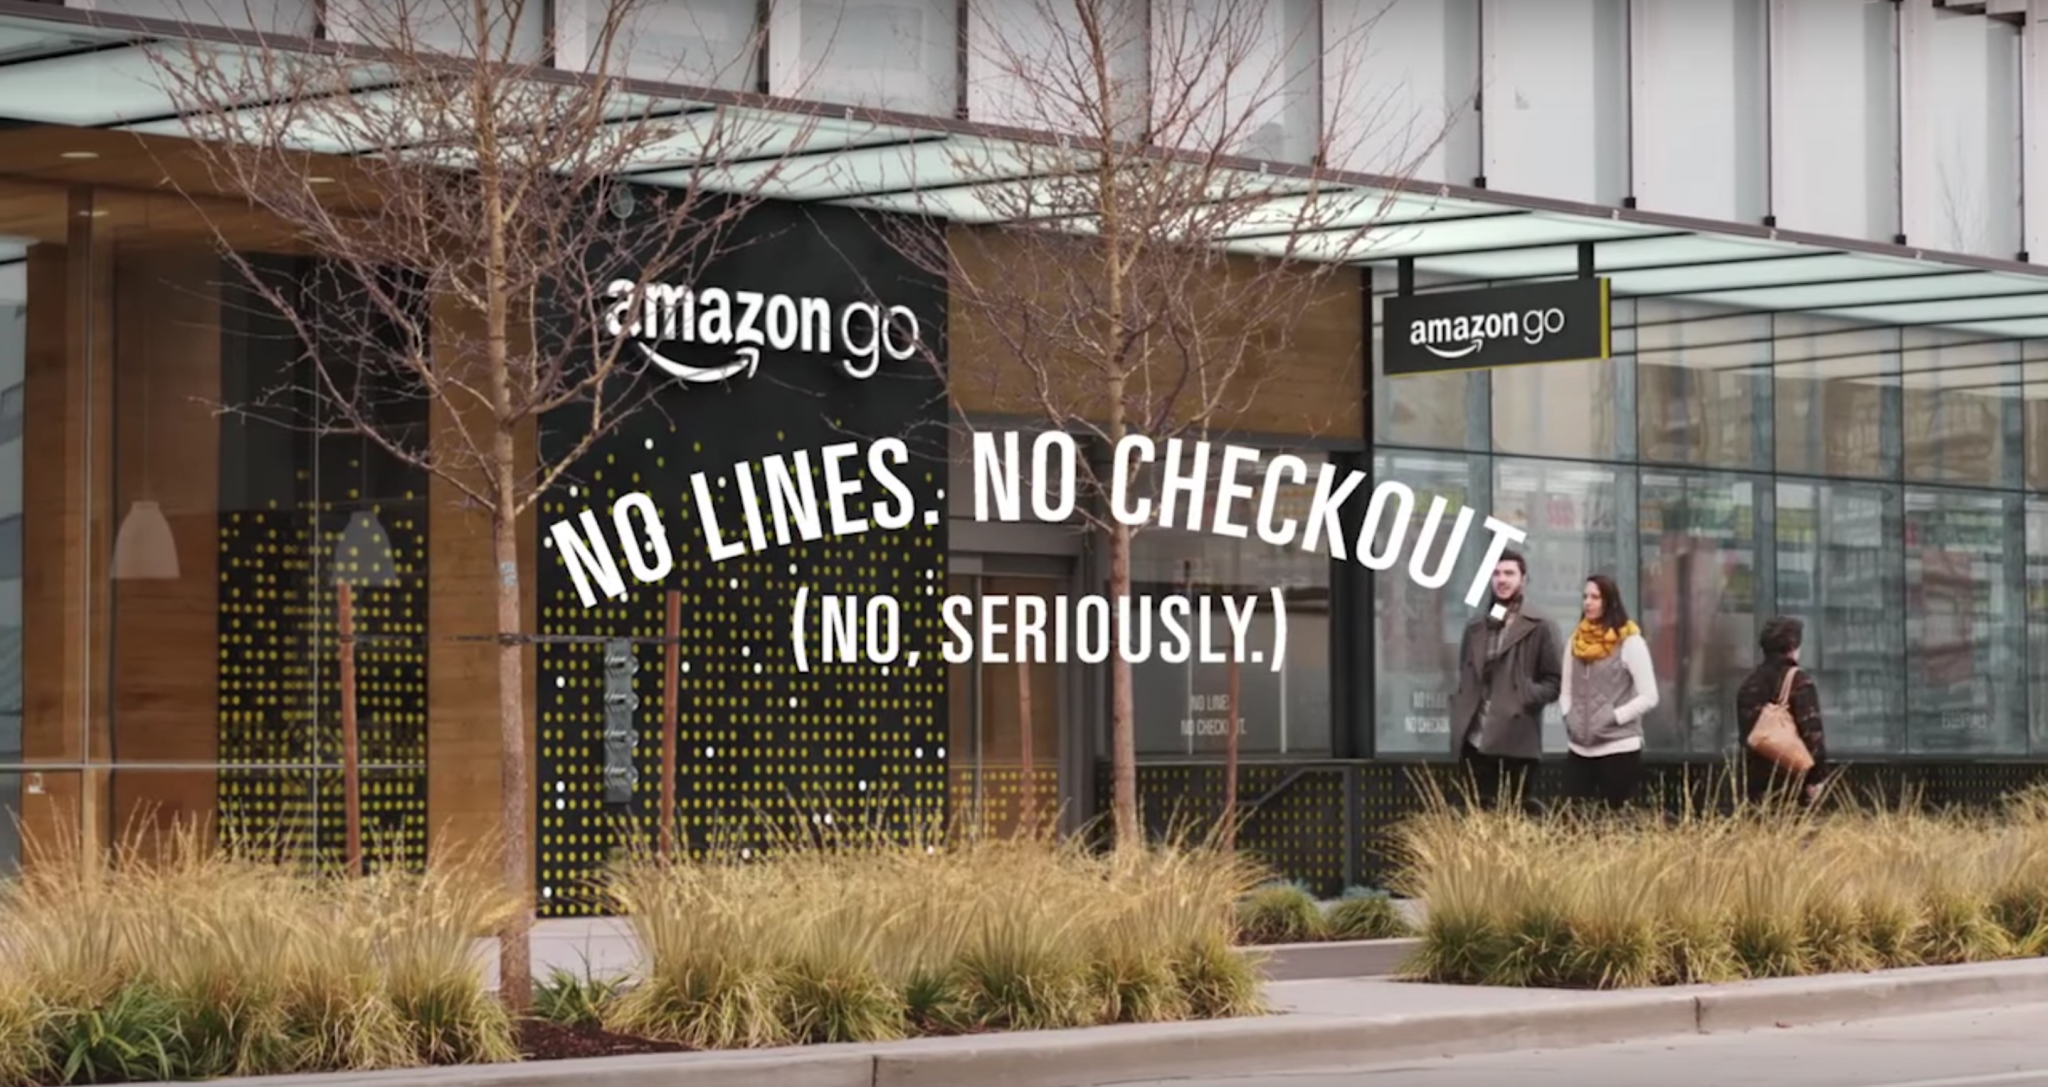 AmazonGo Andro Dollar - Amazon makes shop lifting legal with Amazon Go